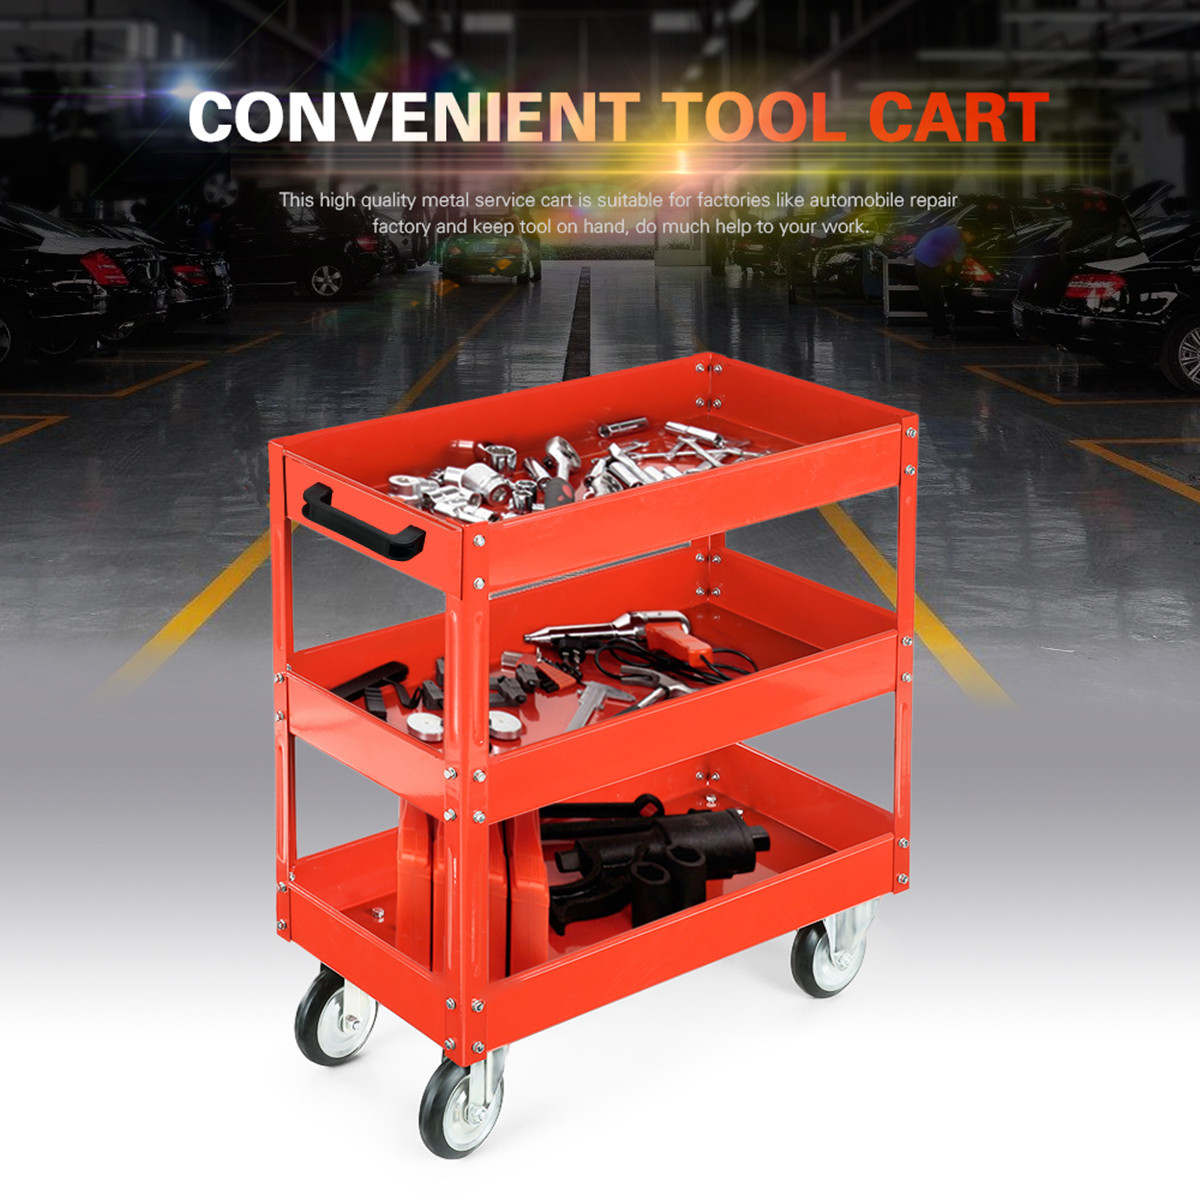 3 Tier Shelf Heavy Duty Workshop Garage DIY Tool Storage Trolley Wheel Cart Tray Capacity for Holding Heavy Equipment 200kg Load sognare pull out basin faucets golden finish cold and hot bathroom sink faucet solid brass single handle basin mixer tap crane